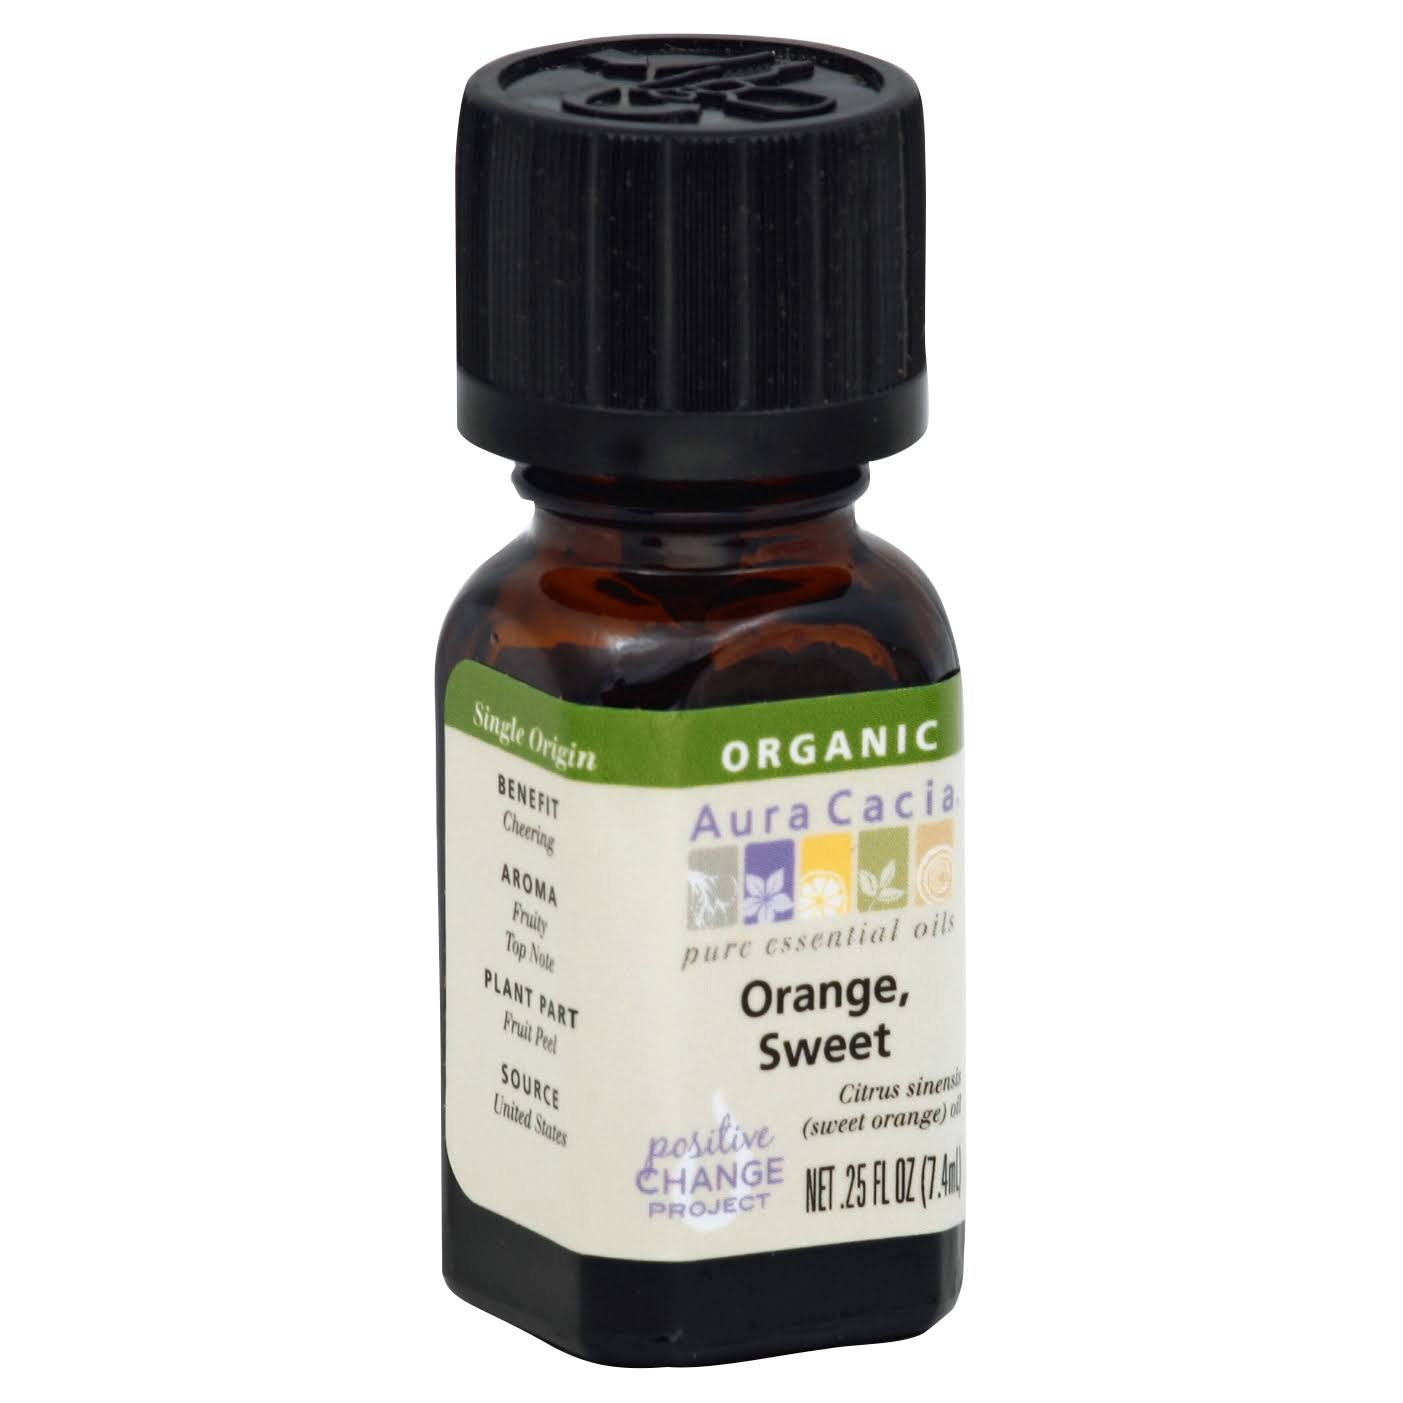 Aura Cacia Organic Essential Oil - Orange Sweet, 0.25oz